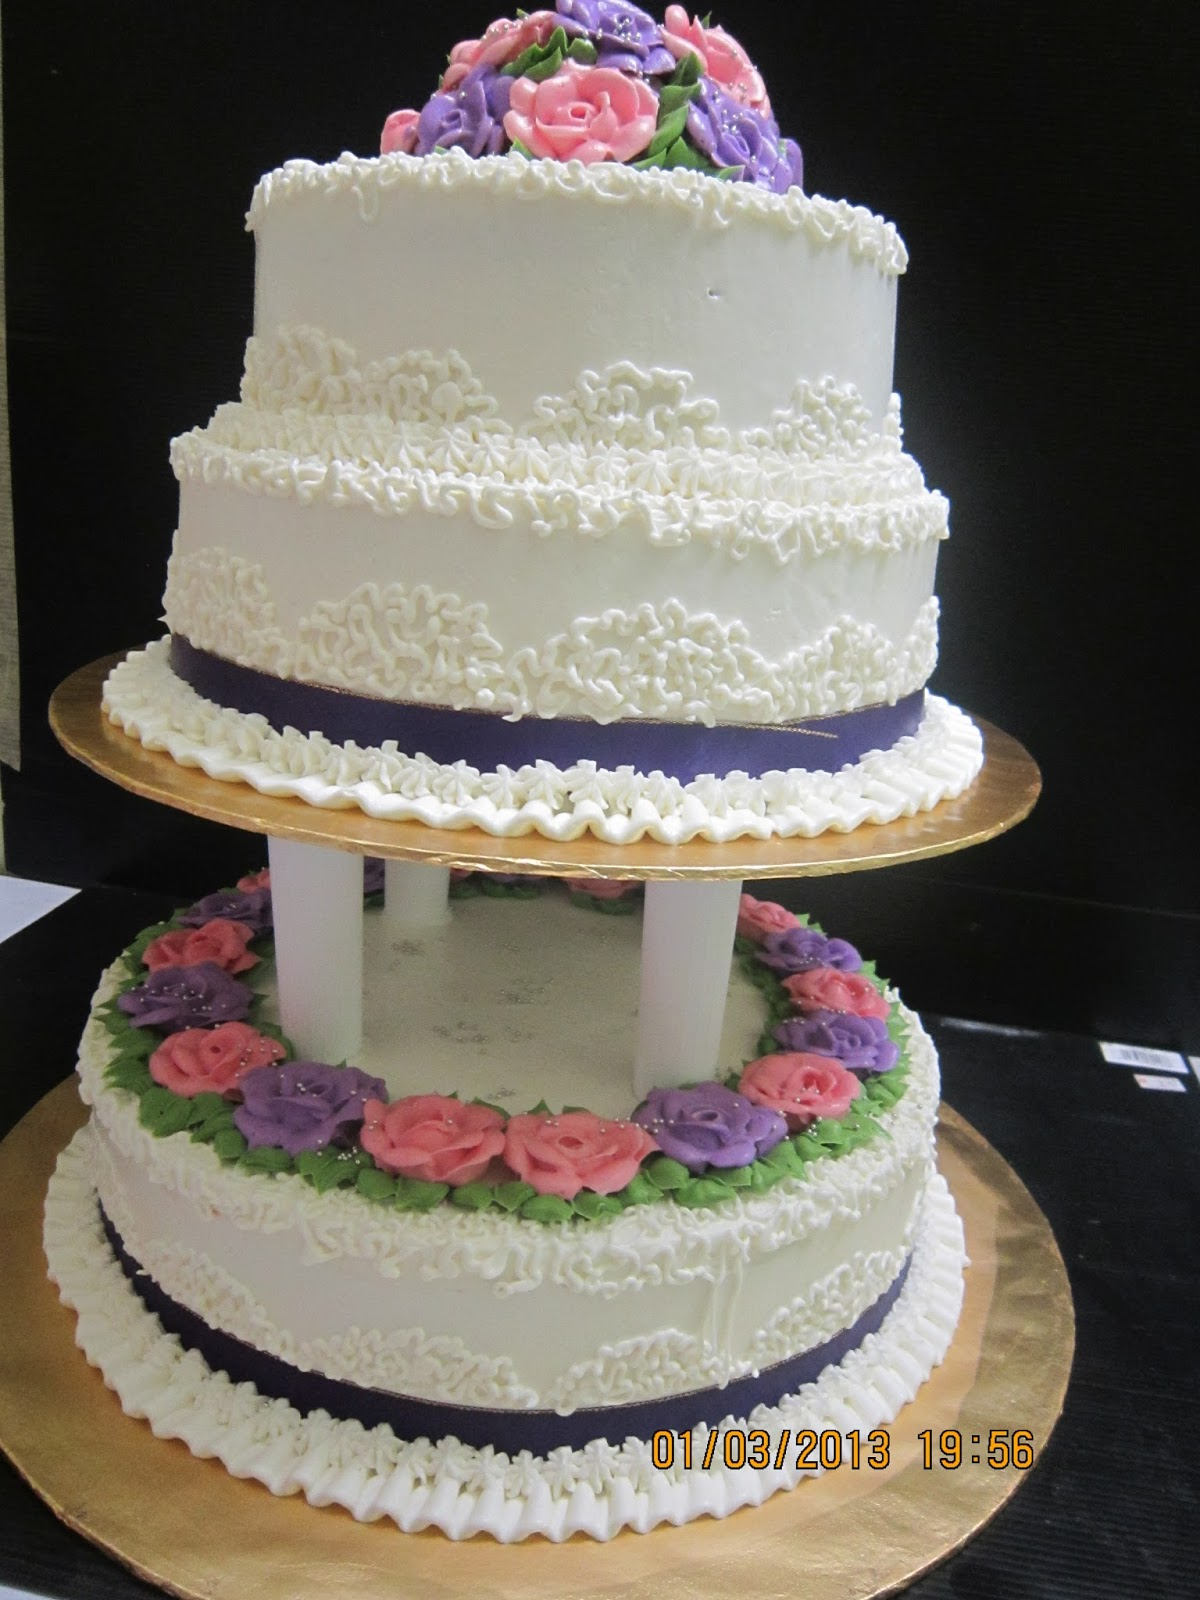 how to make a stacked wedding cake balqisyia s choc shop tier amp stacked wedding cake 15859